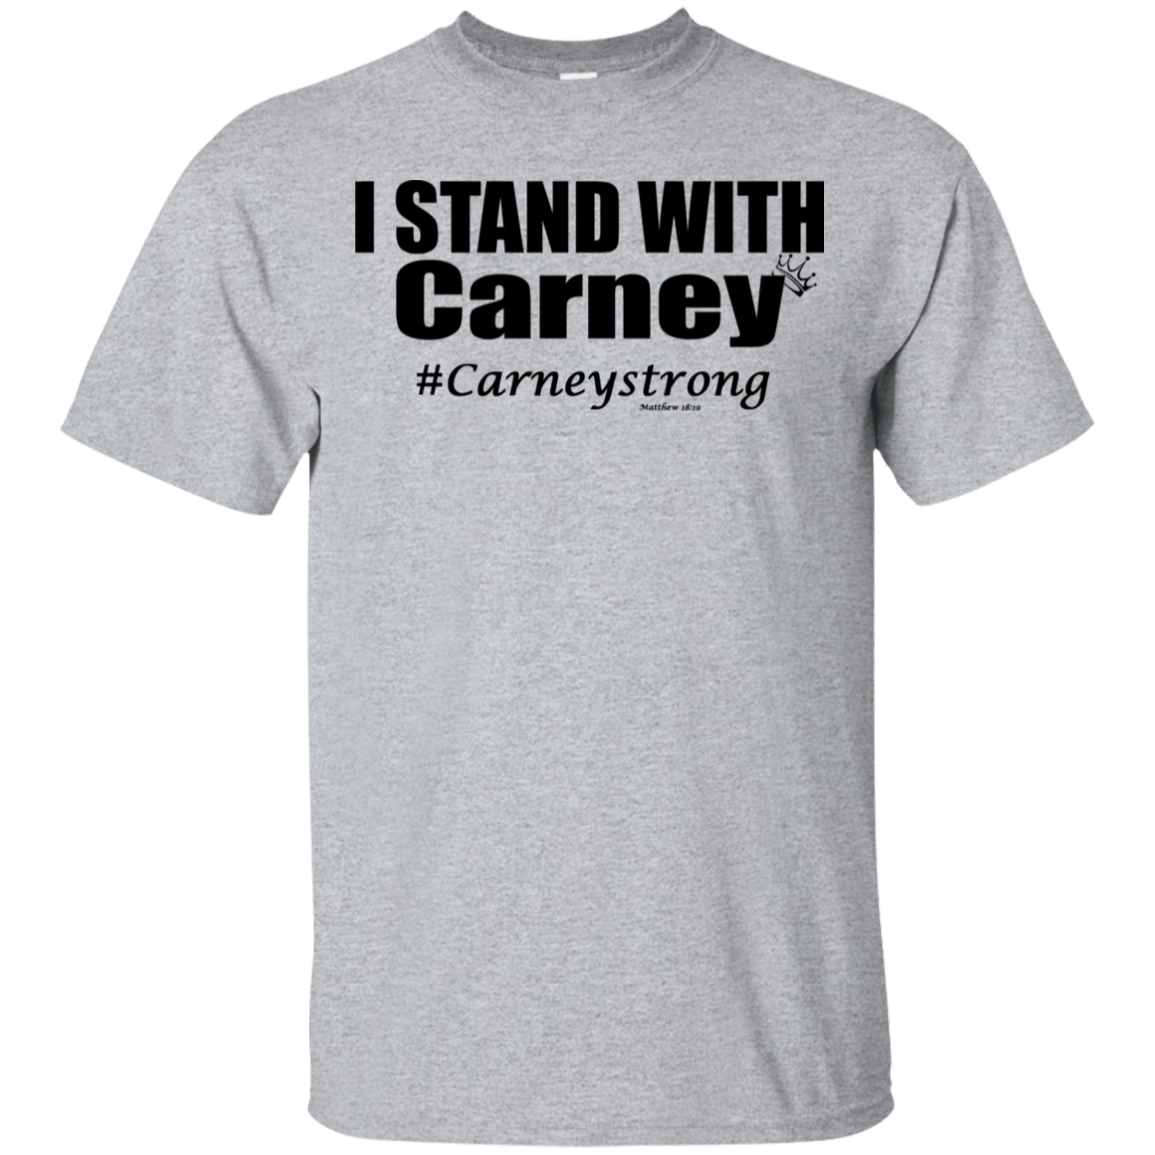 Carney Strong T-shirt